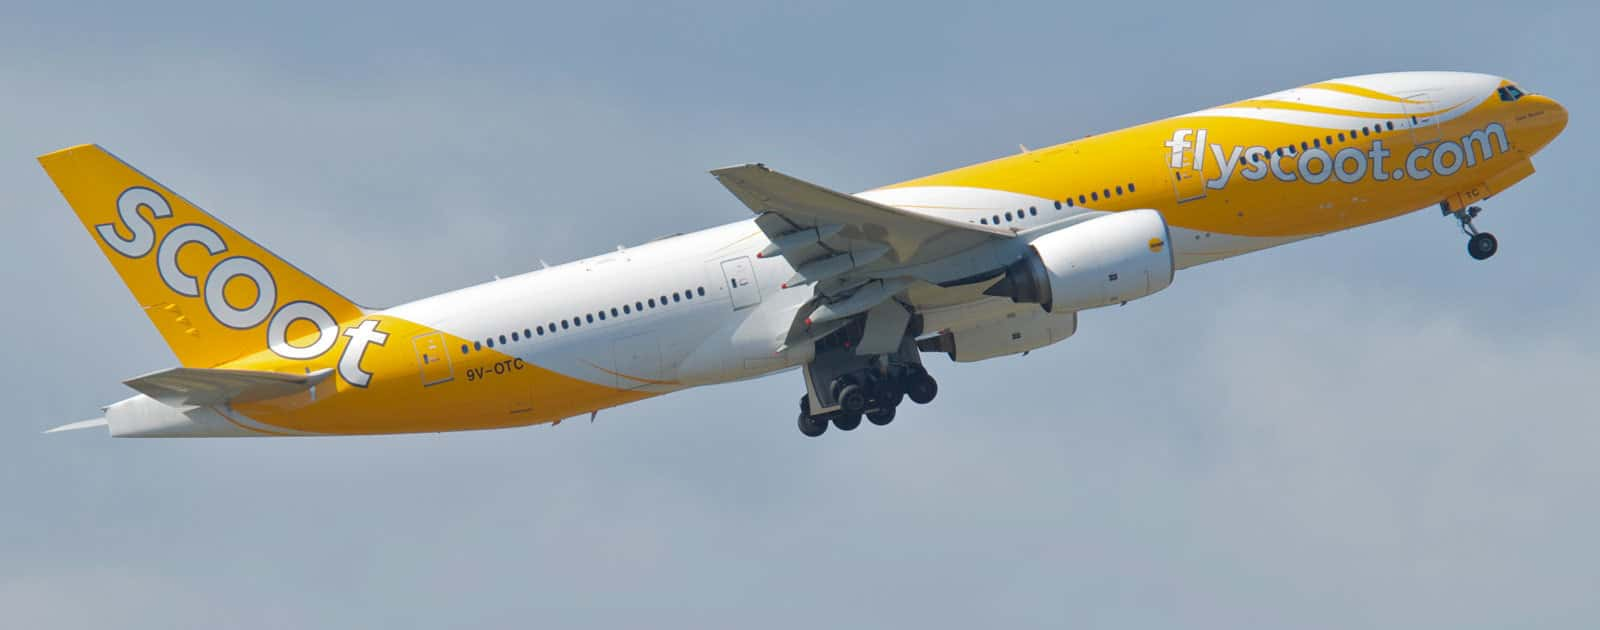 scoot airlines - photo #6